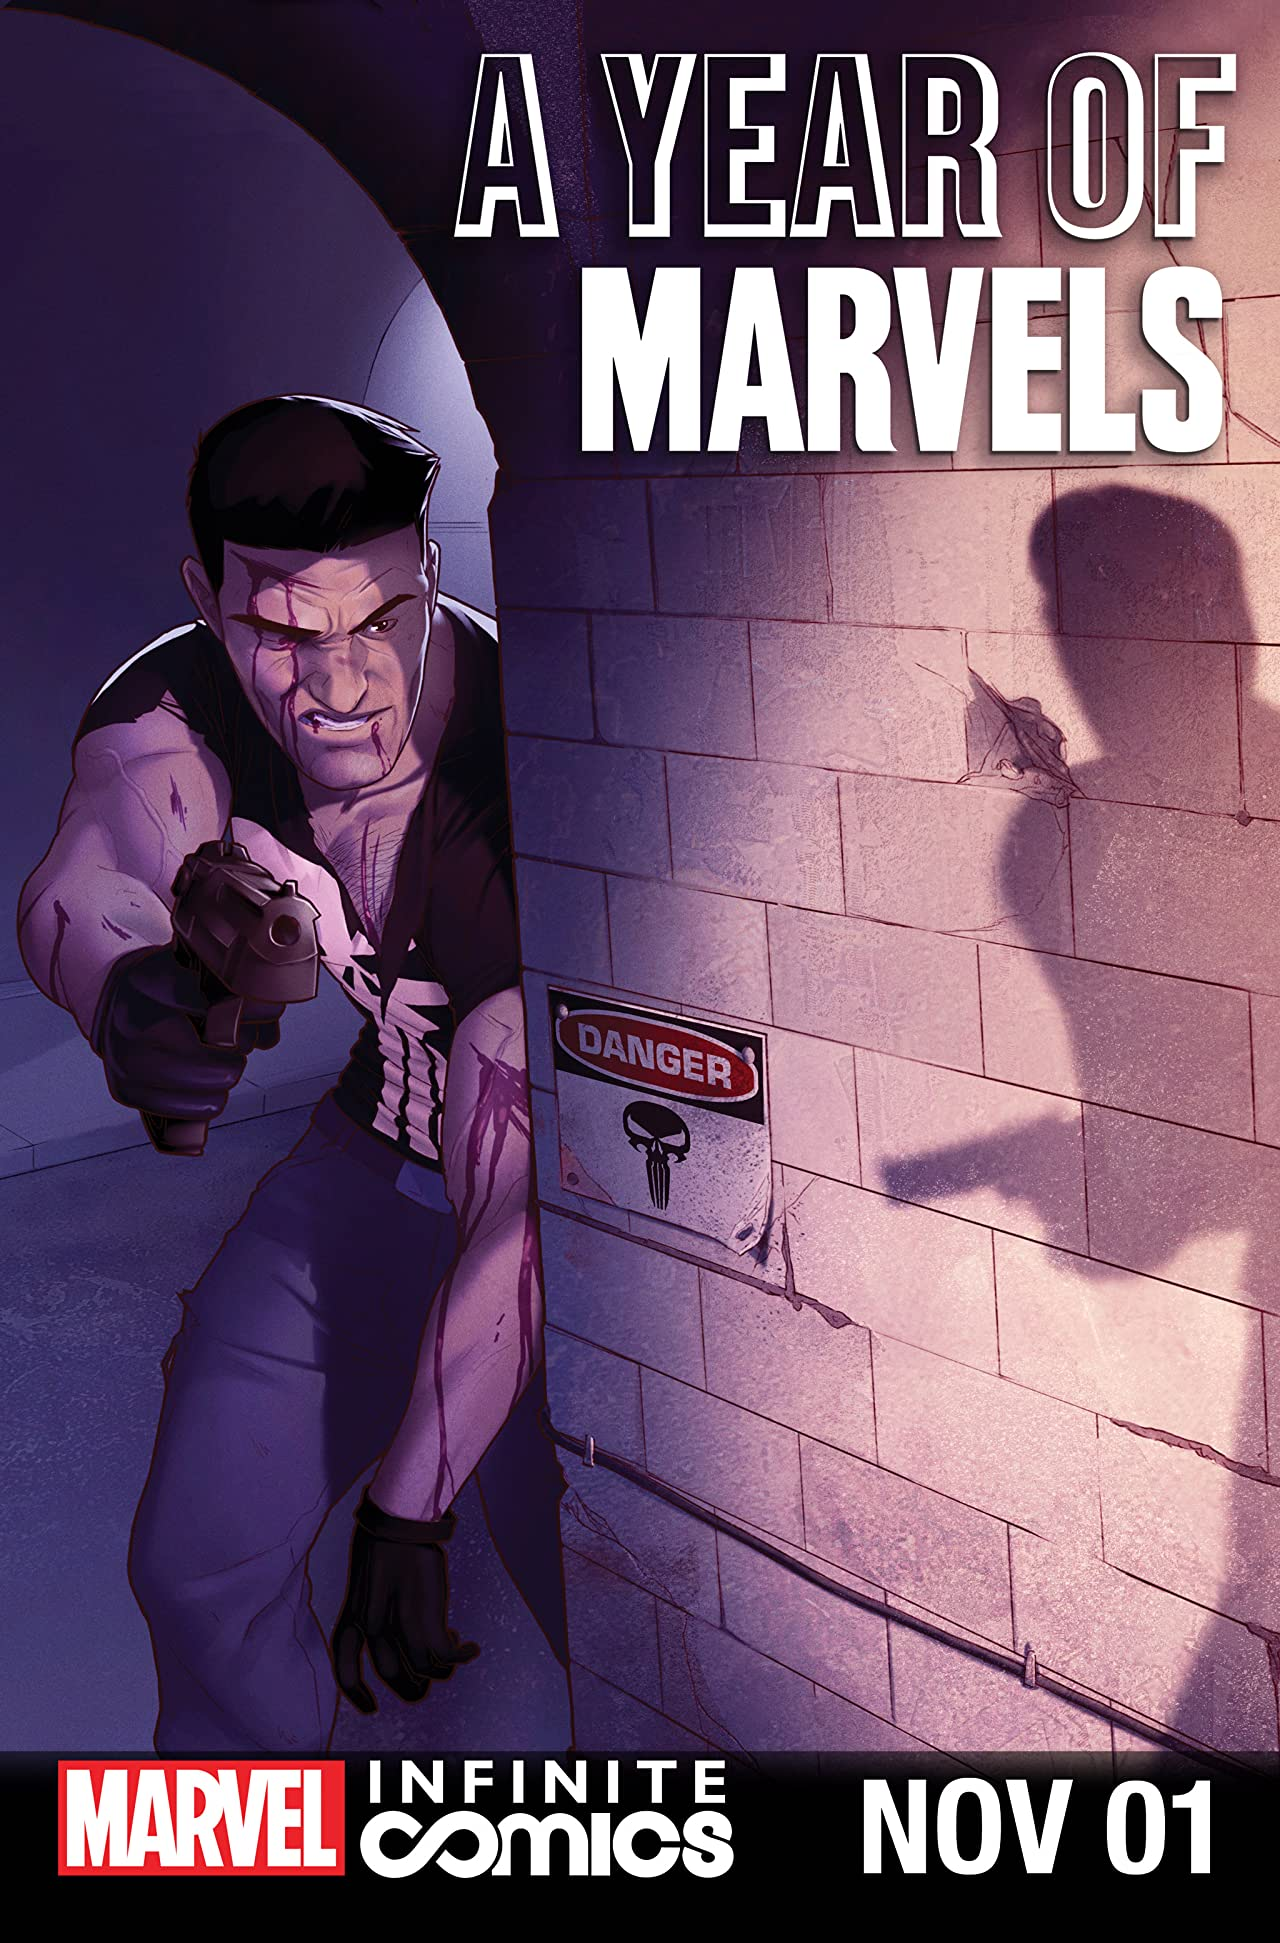 A Year Of Marvels: November Infinite Comic #1